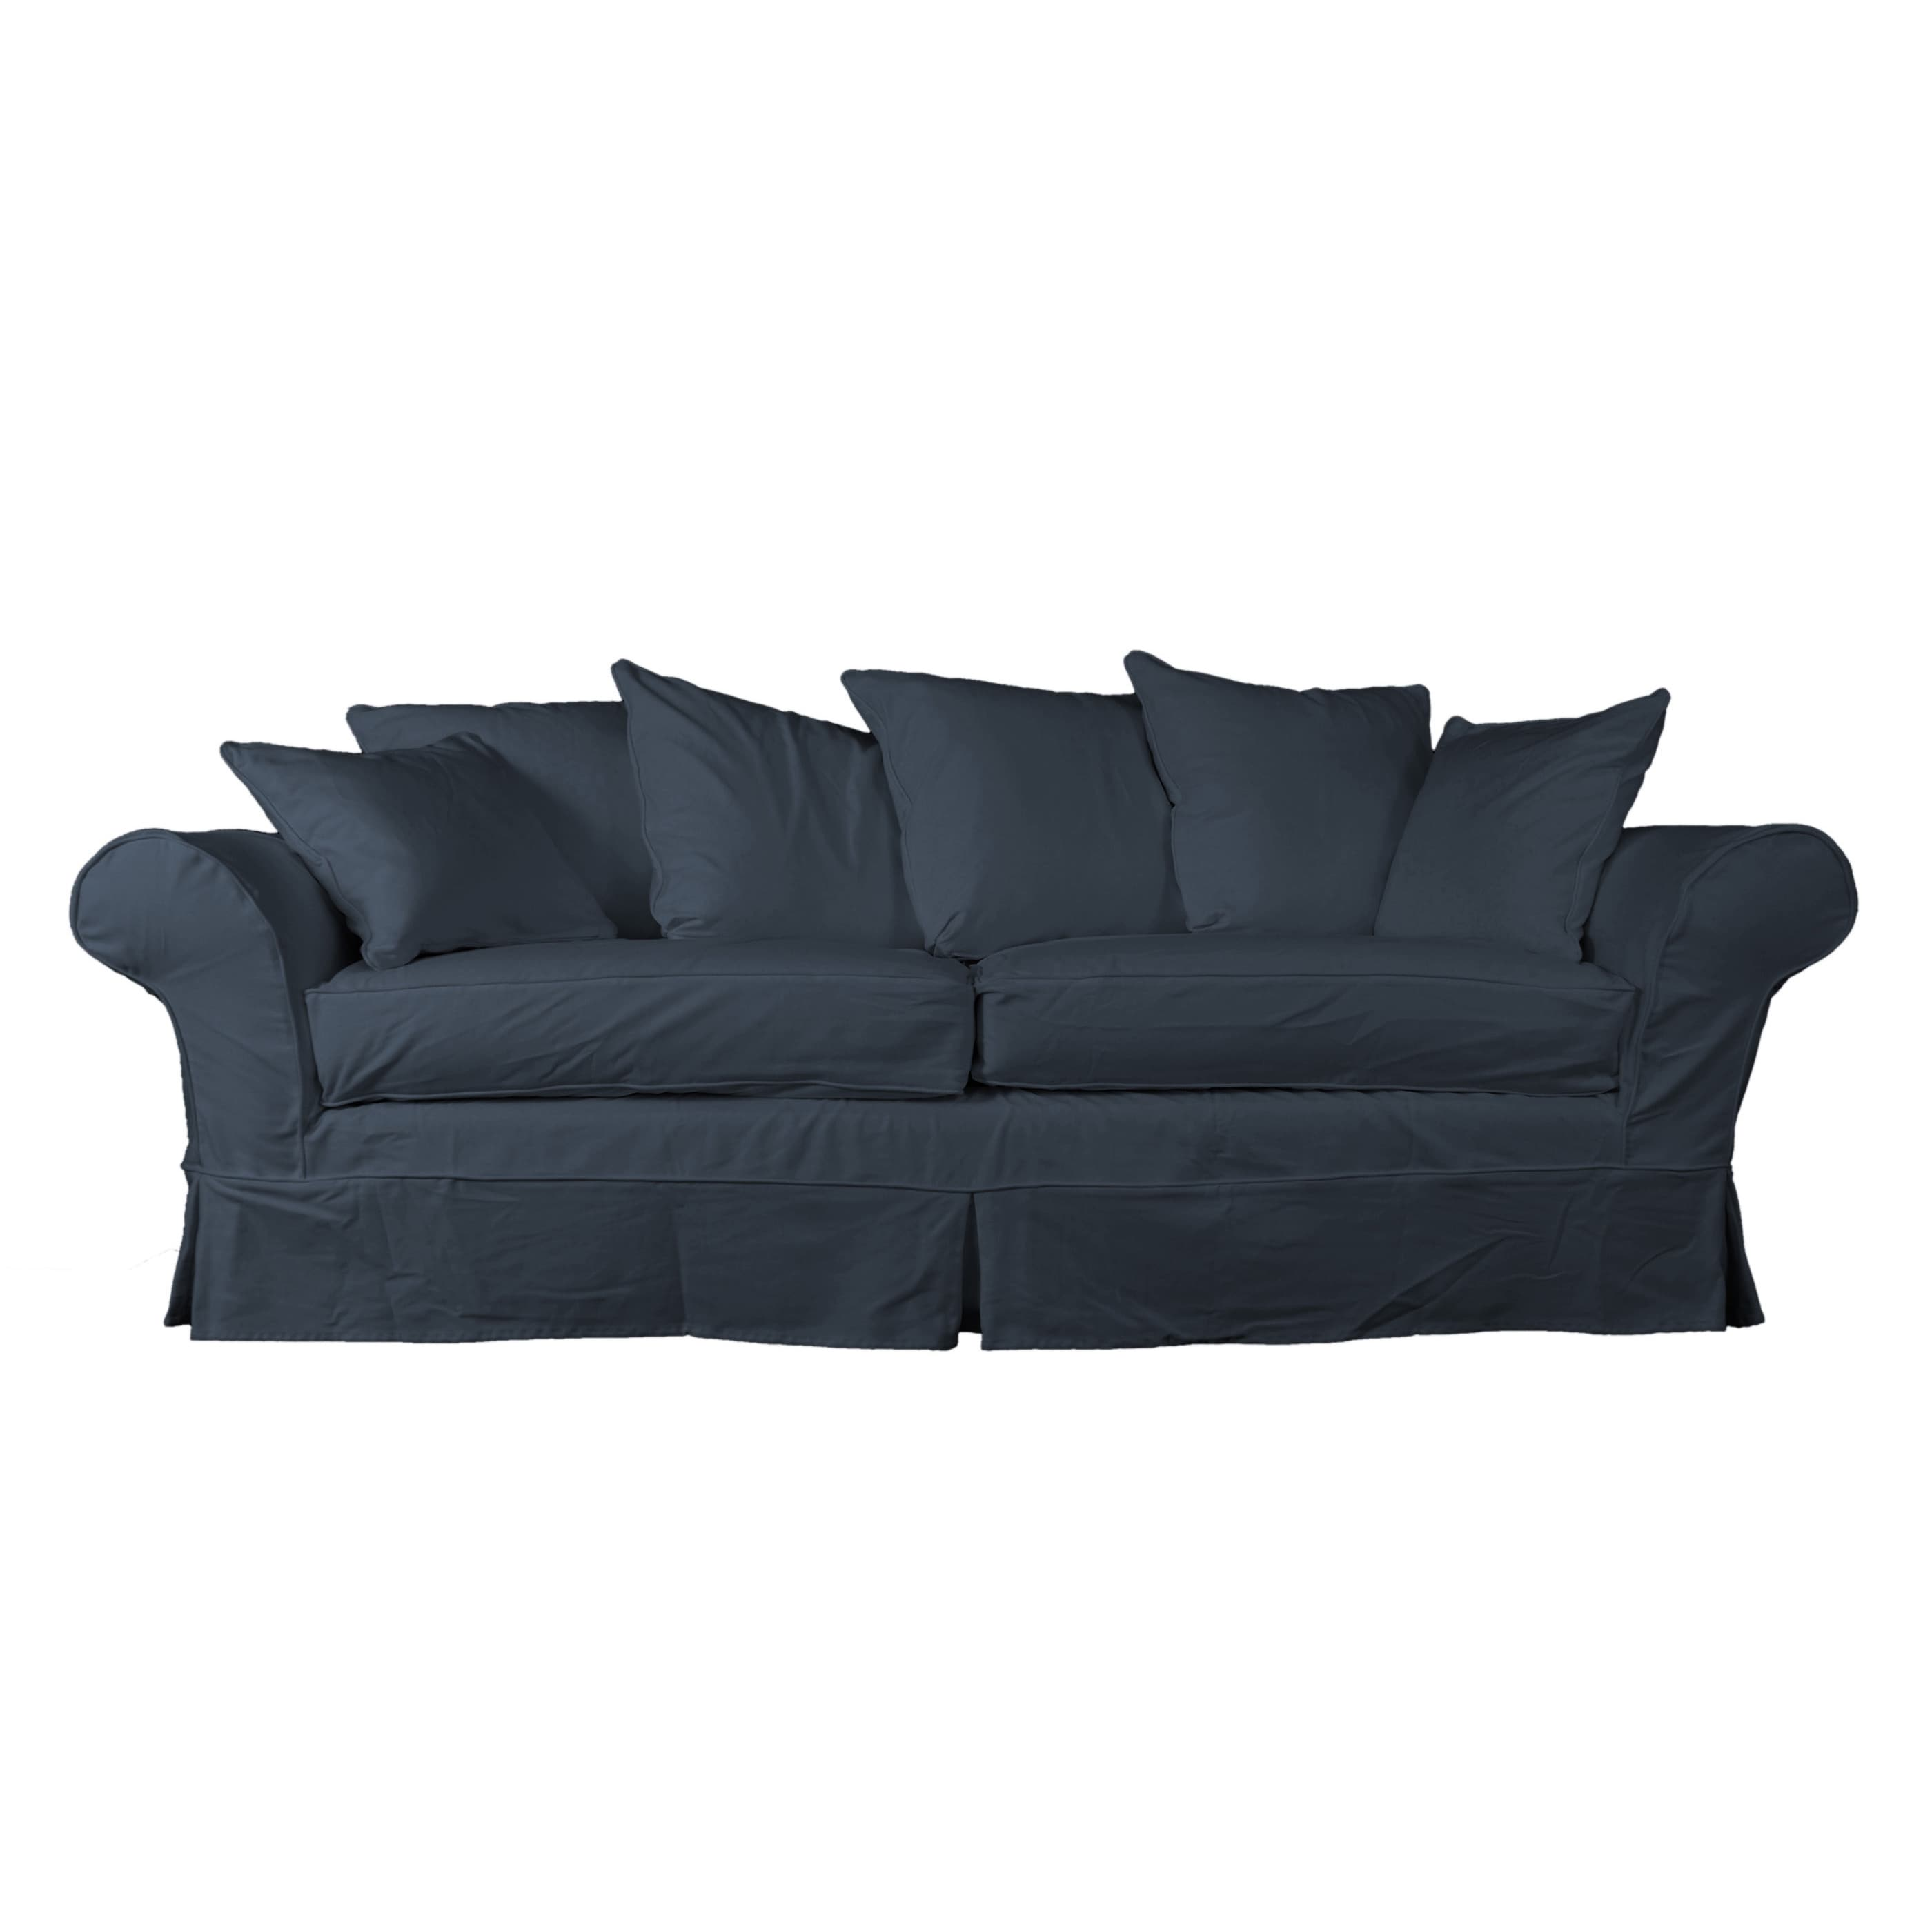 sunset category sofas slipcover product furniture su trading slipcovered upholstery cover horizon slip sofa room living color